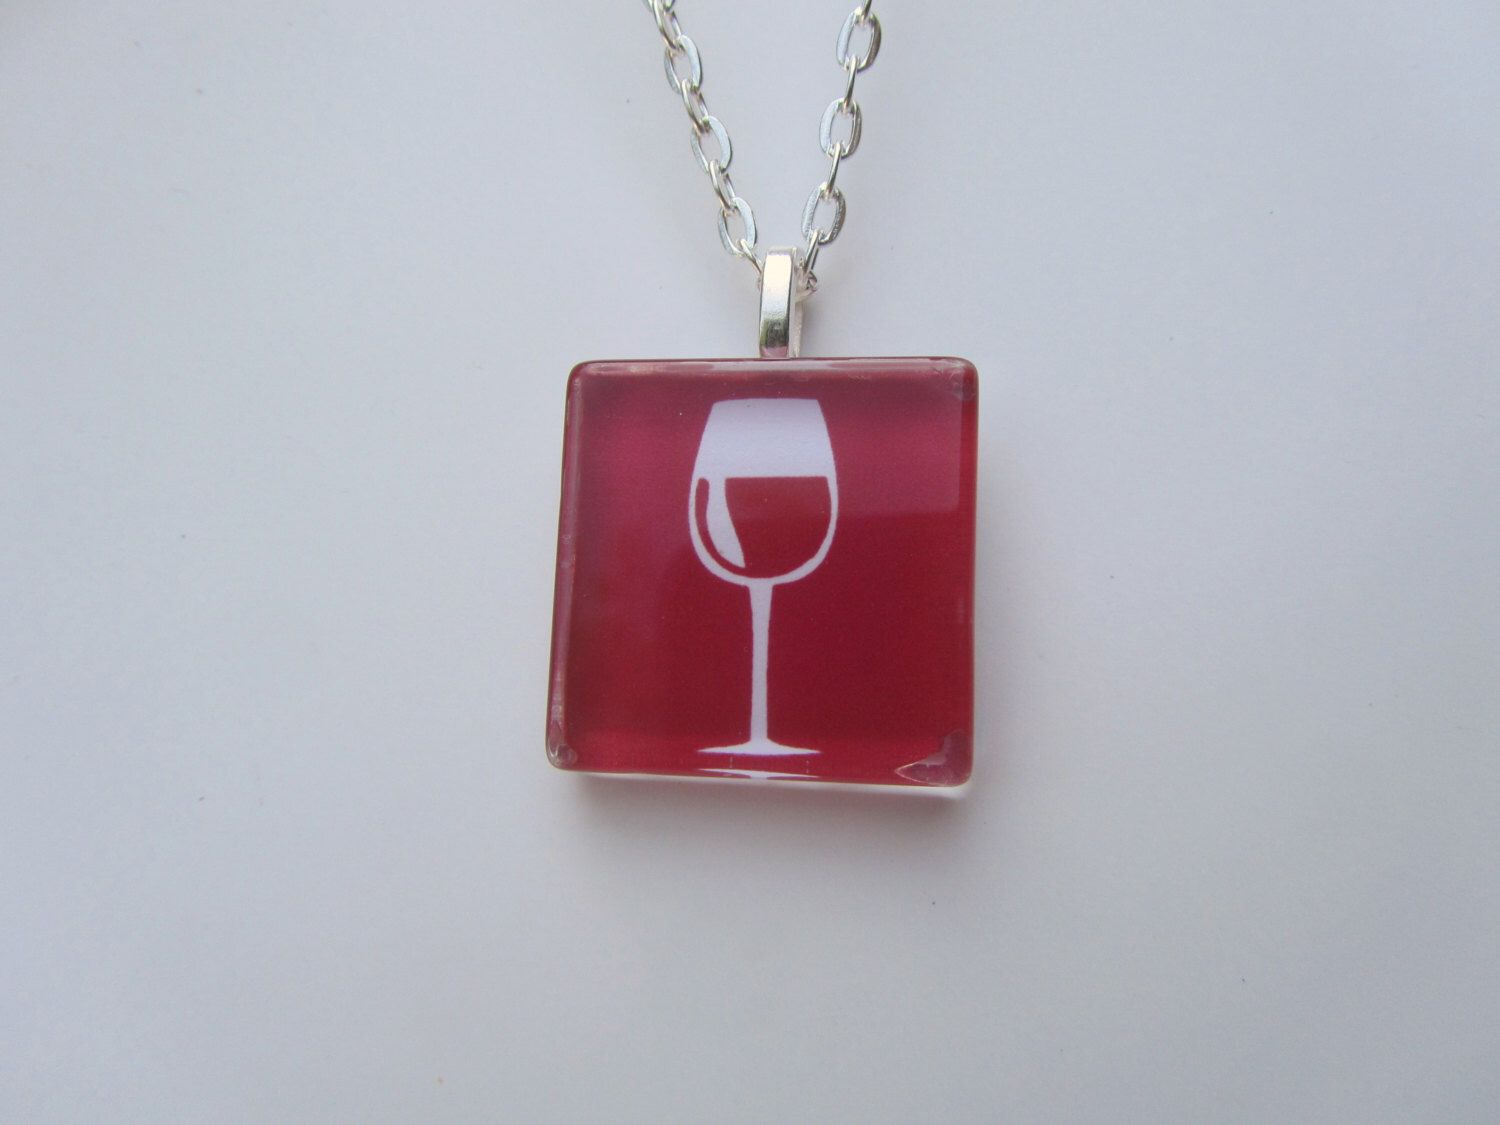 Wine Glass Pendant Necklace With Silver Chain Necklace Glass Pendant Necklace Silver Chain Necklace Glass Pendants